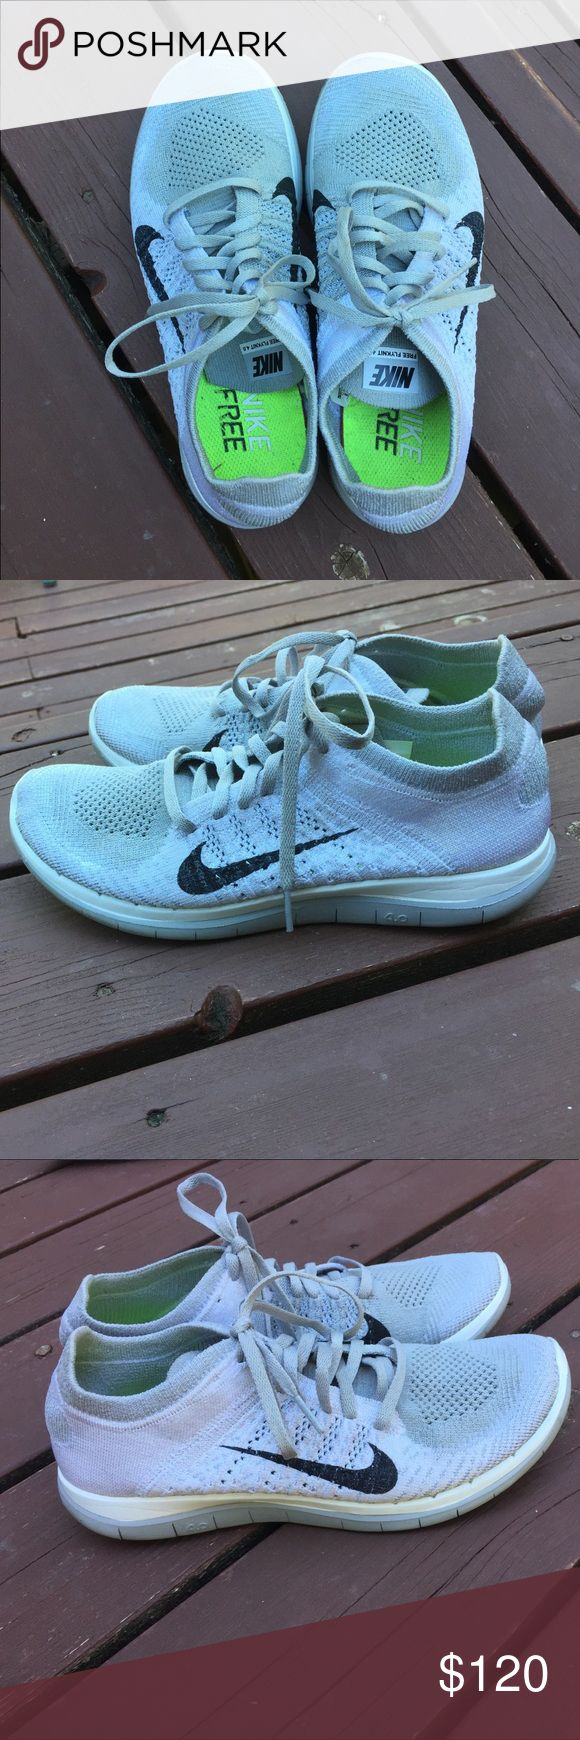 White and gray Oreo Nike free flyknits Firm price. Very gently worn. No scuffs or chipping and In excellent condition! Very hard to find in this size/color combination. **the colors are white and light gray Nike Shoes Athletic Shoes